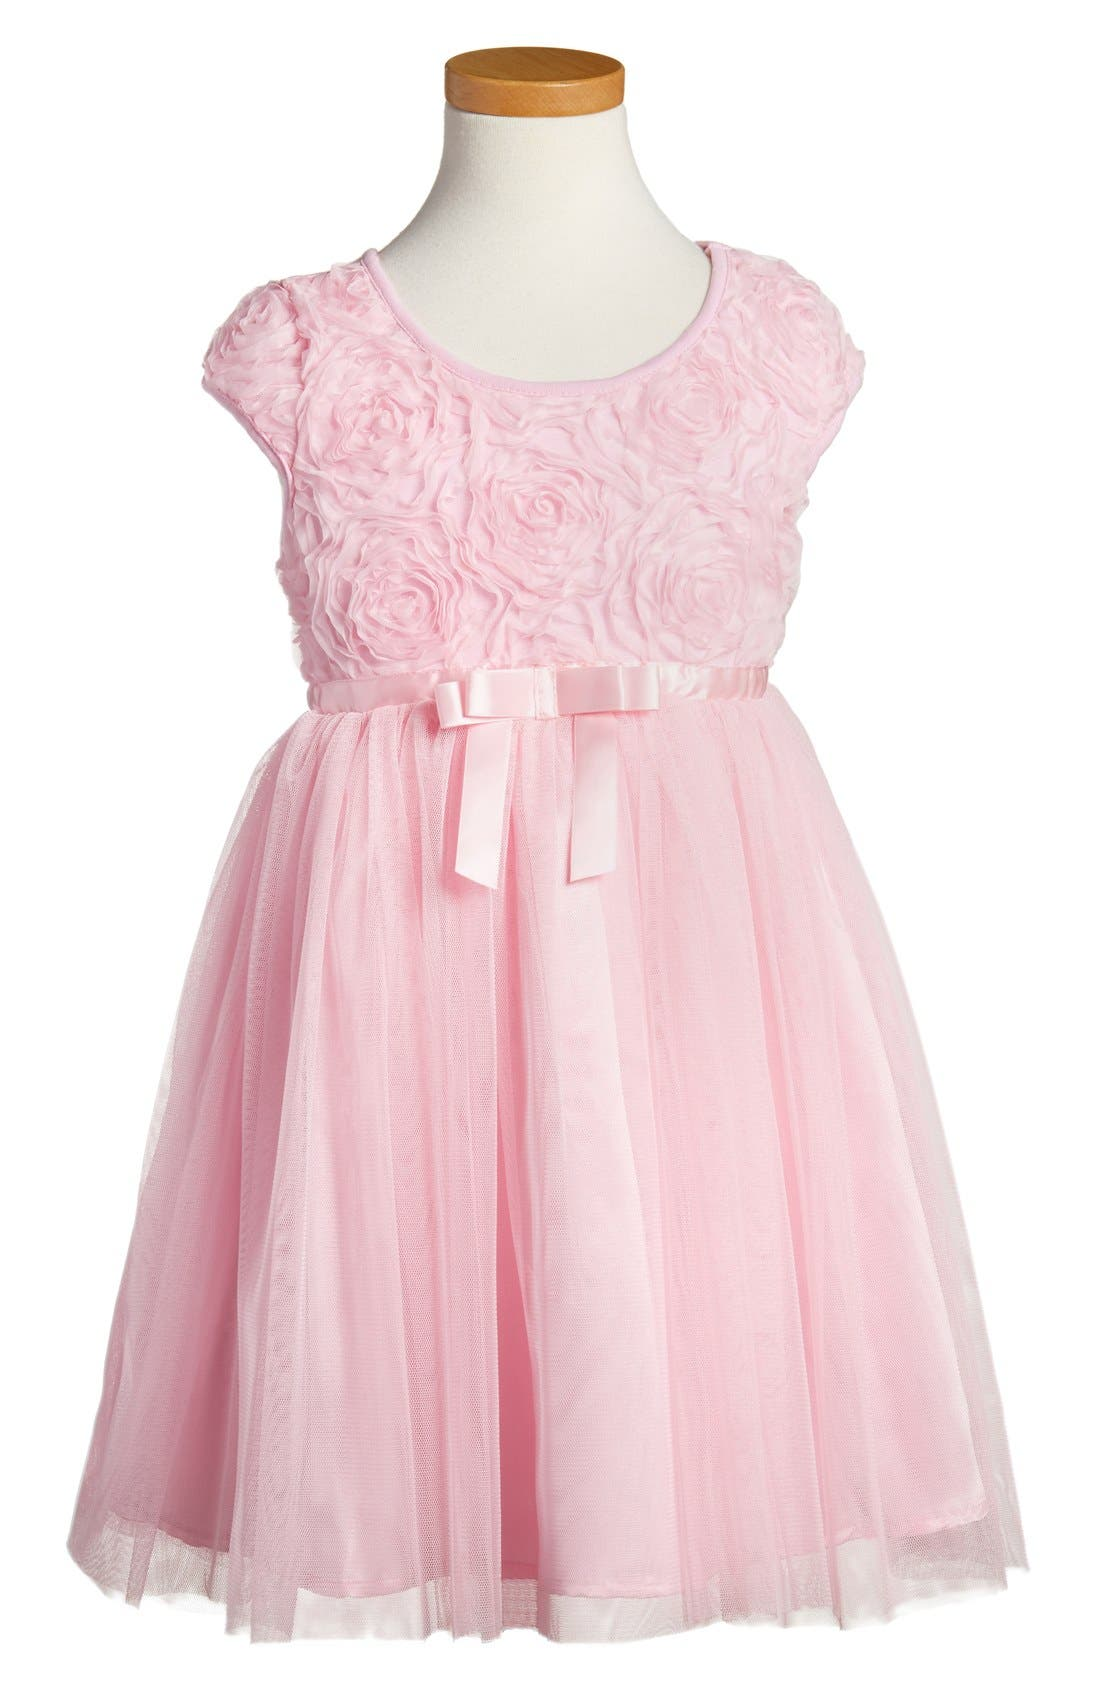 Alternate Image 1 Selected - Popatu Ribbon Rosette Tulle Dress (Little Girls & Big Girls)